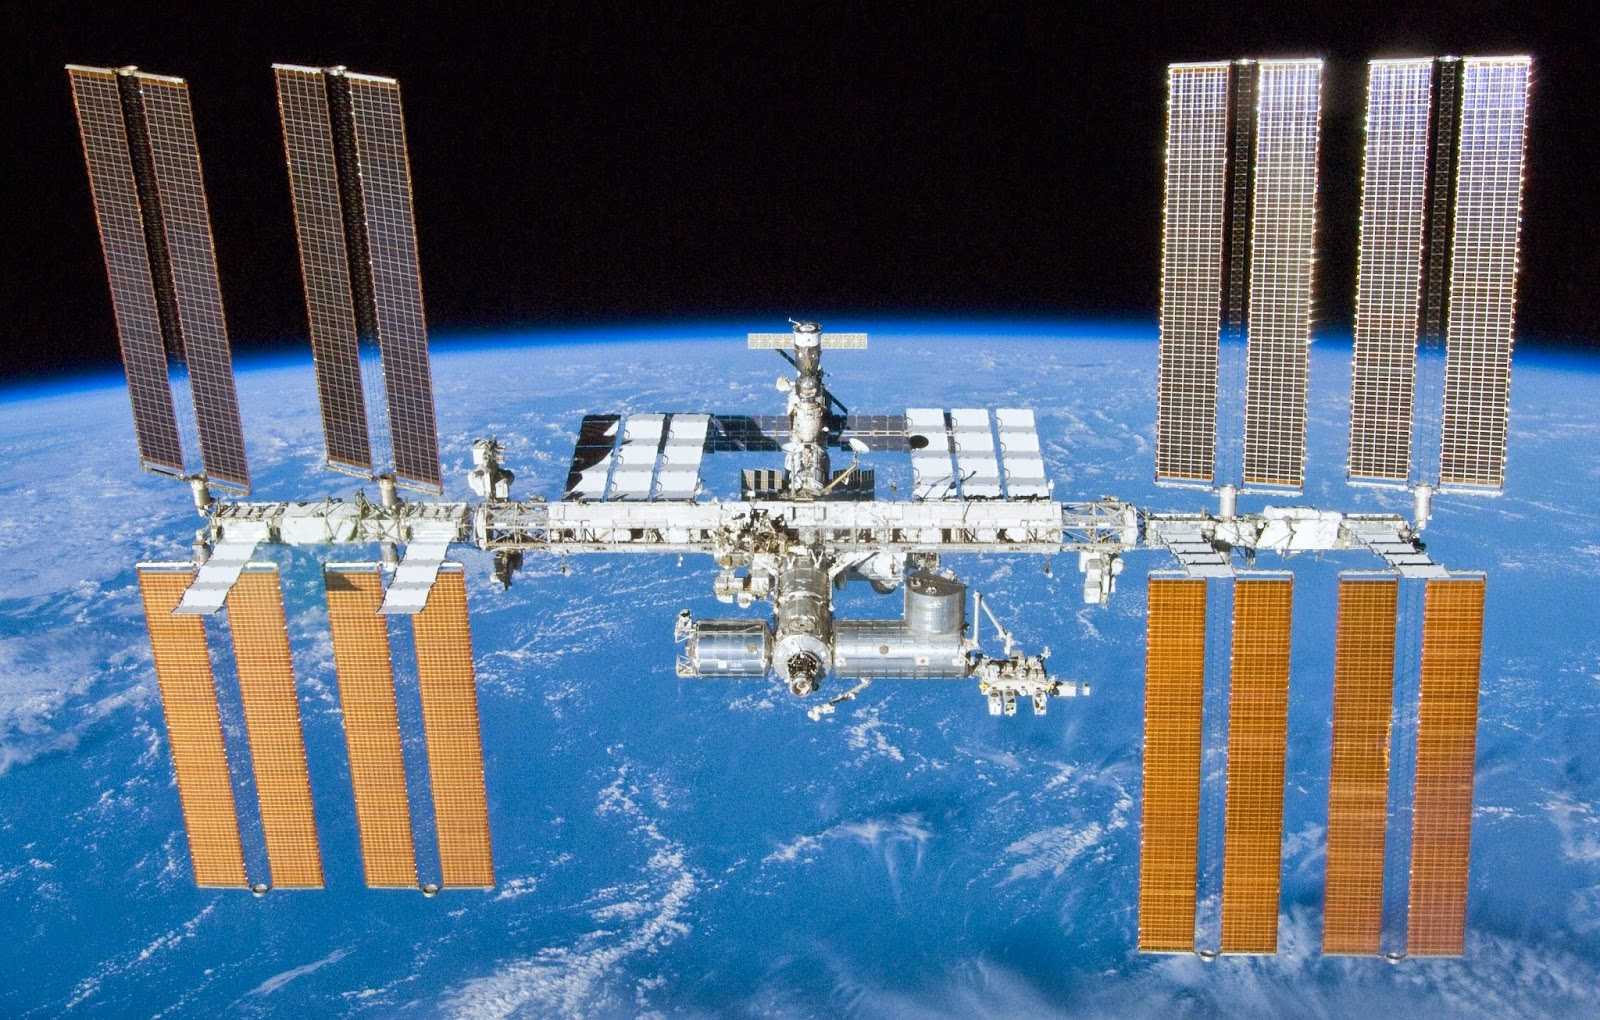 International space Station Em drive electron magnetic waves microwaves photons science thruster engine space travel astronomy exploration spacecraft future fuelless industry quantum mechanics laws of physics